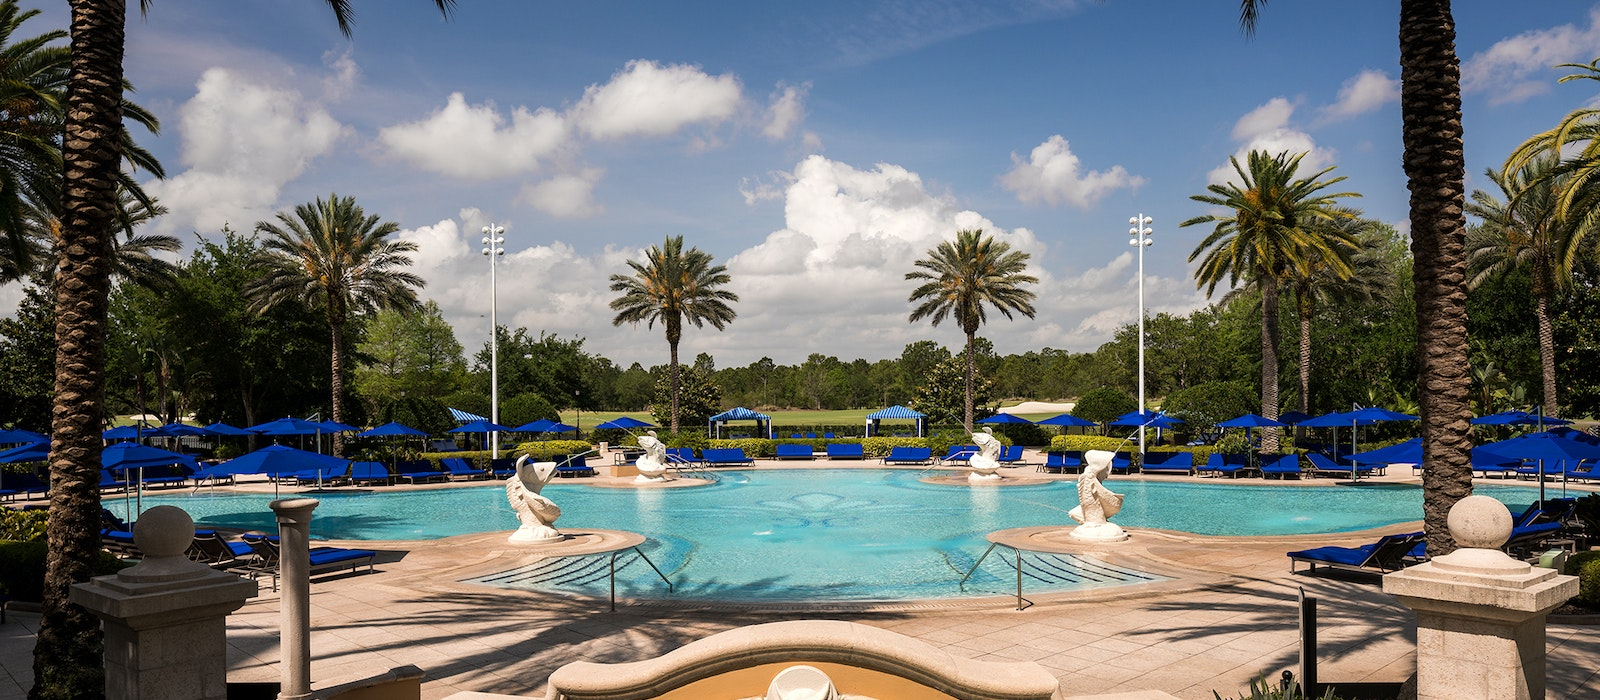 For a break from the crowds and cacophony of the theme parks, find serenity—and fun—at these Orlando hotels.